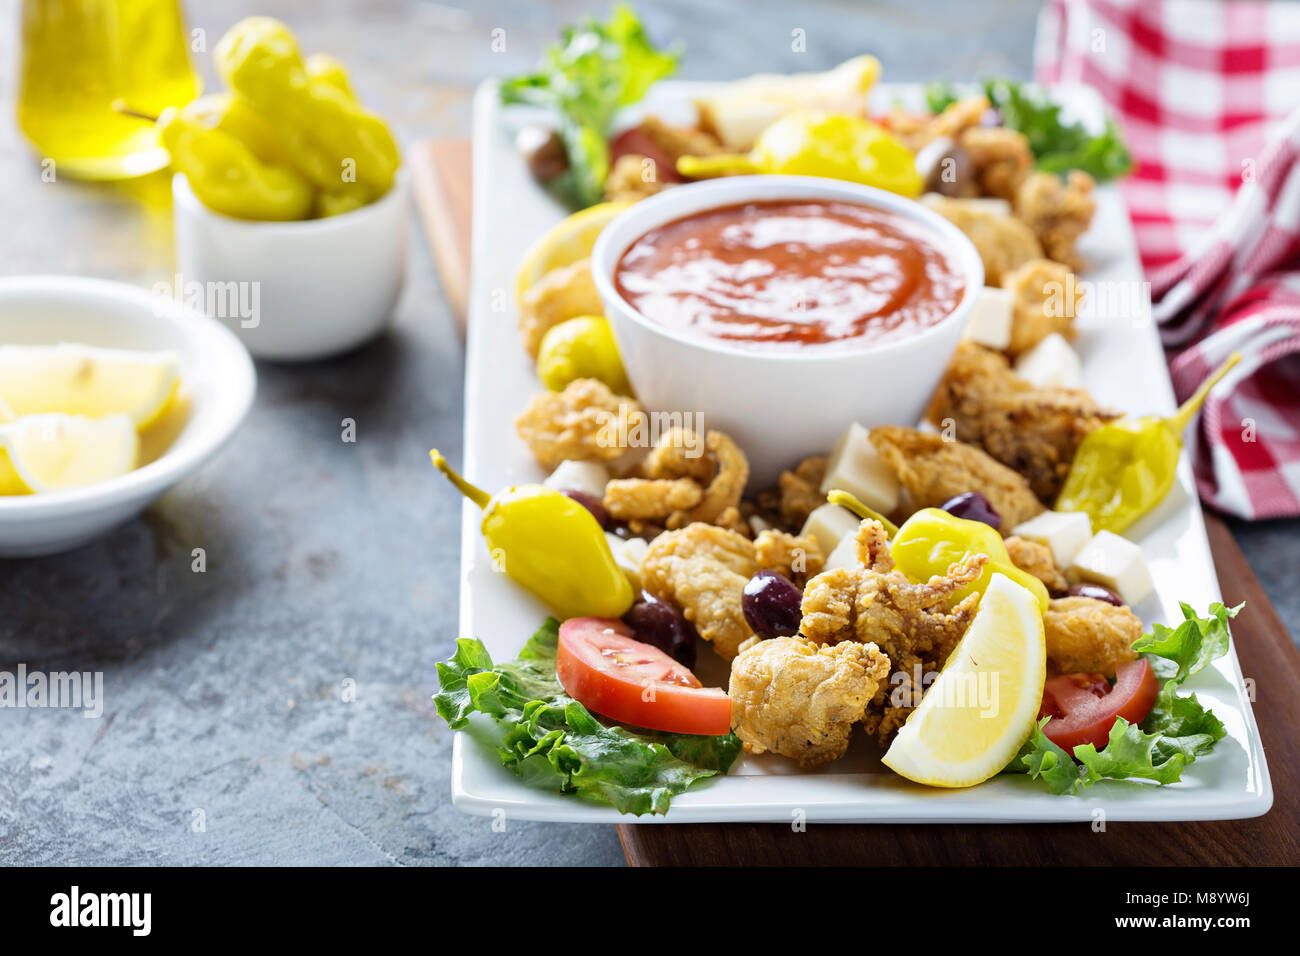 Fried calamari with marinara sauce - Stock Image